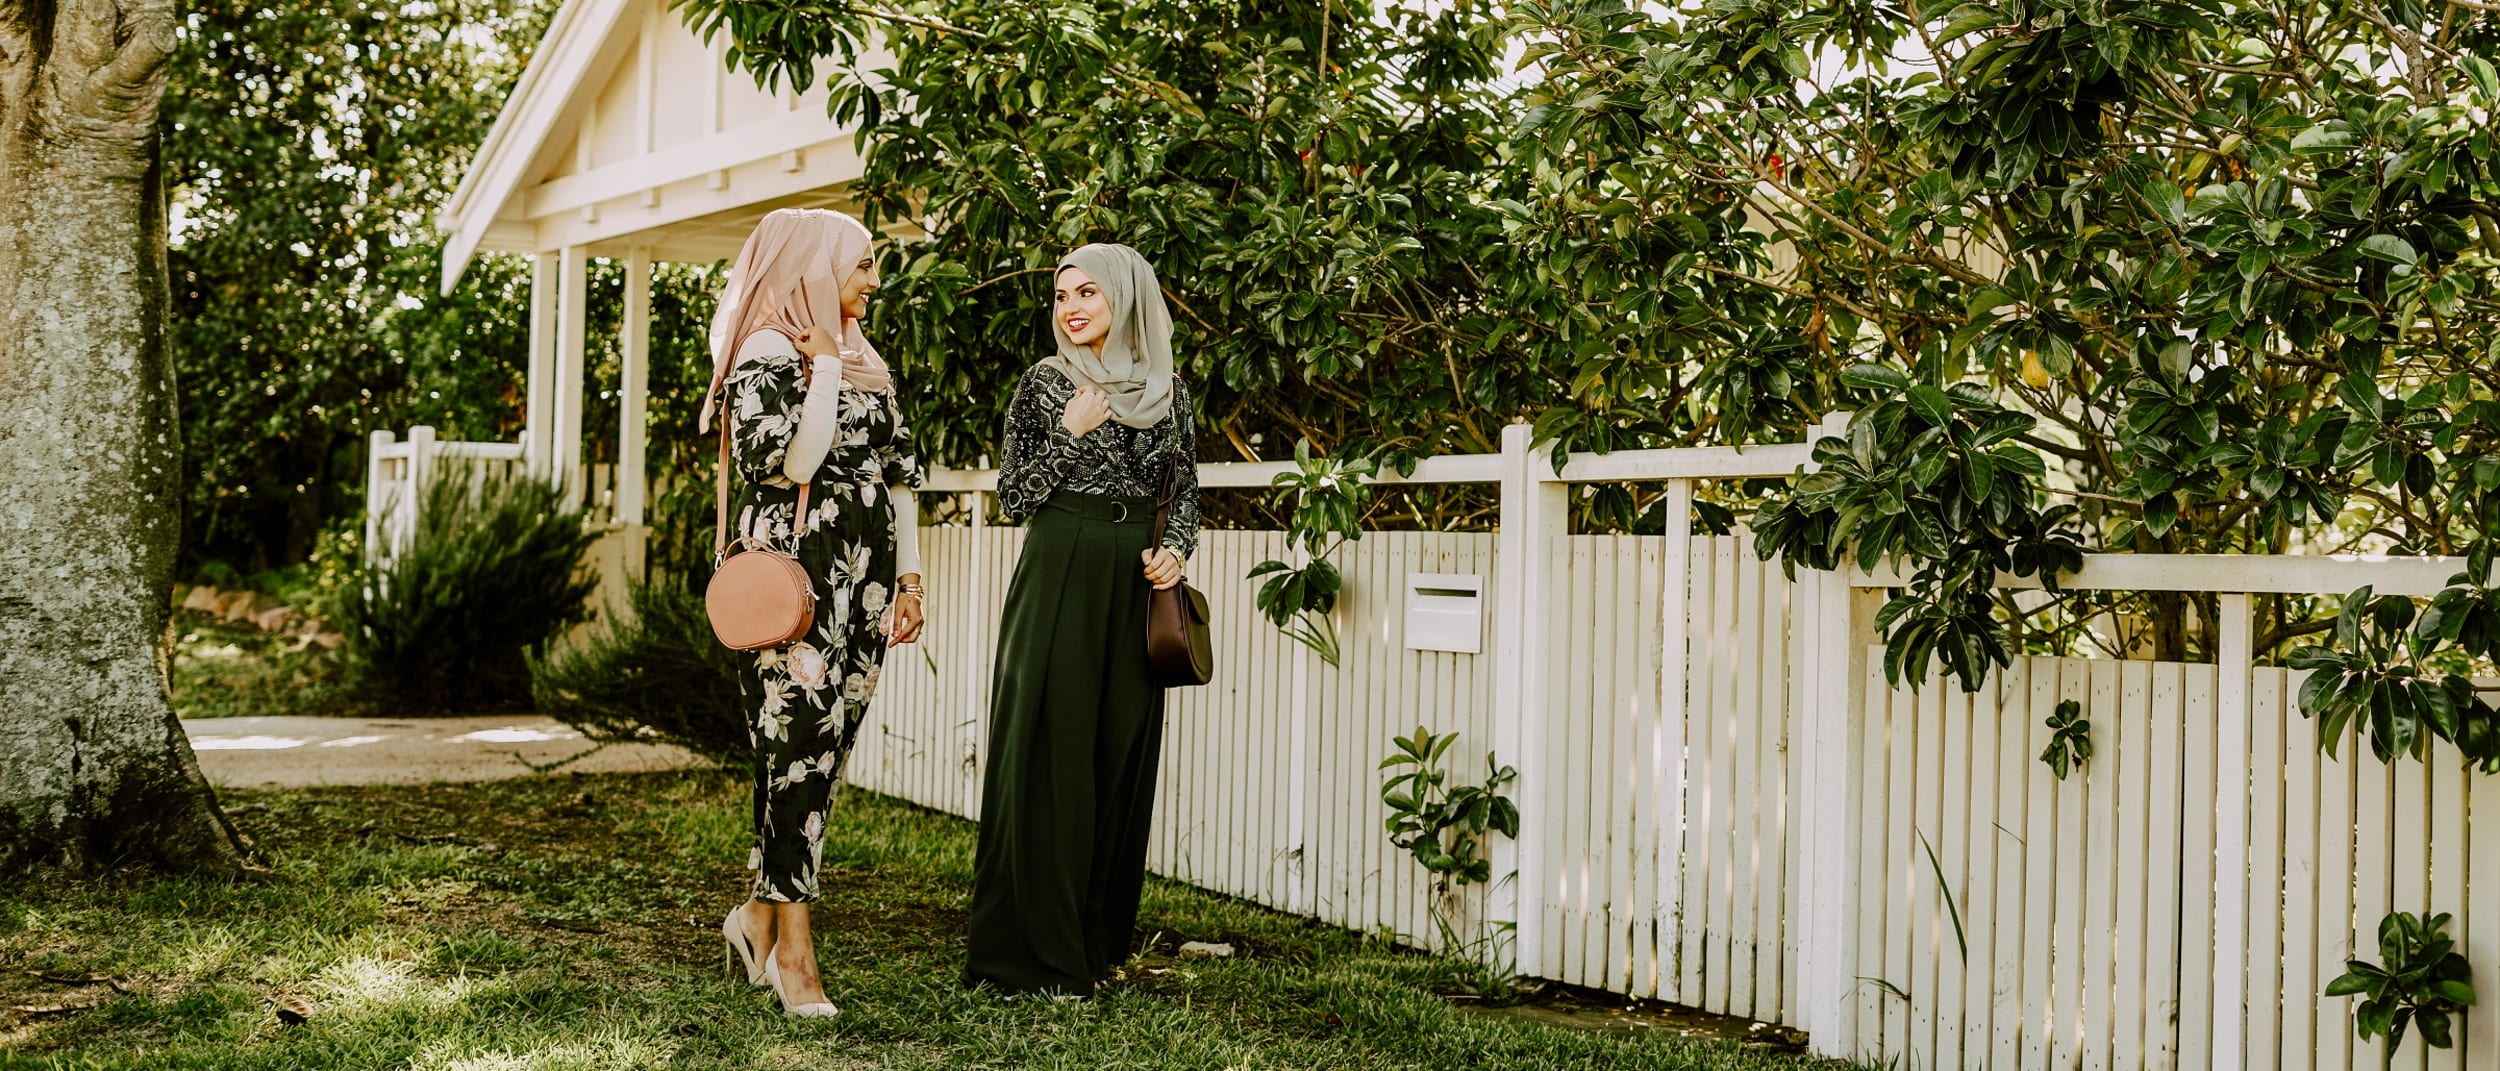 Outfit inspo for Eid al-Fitr